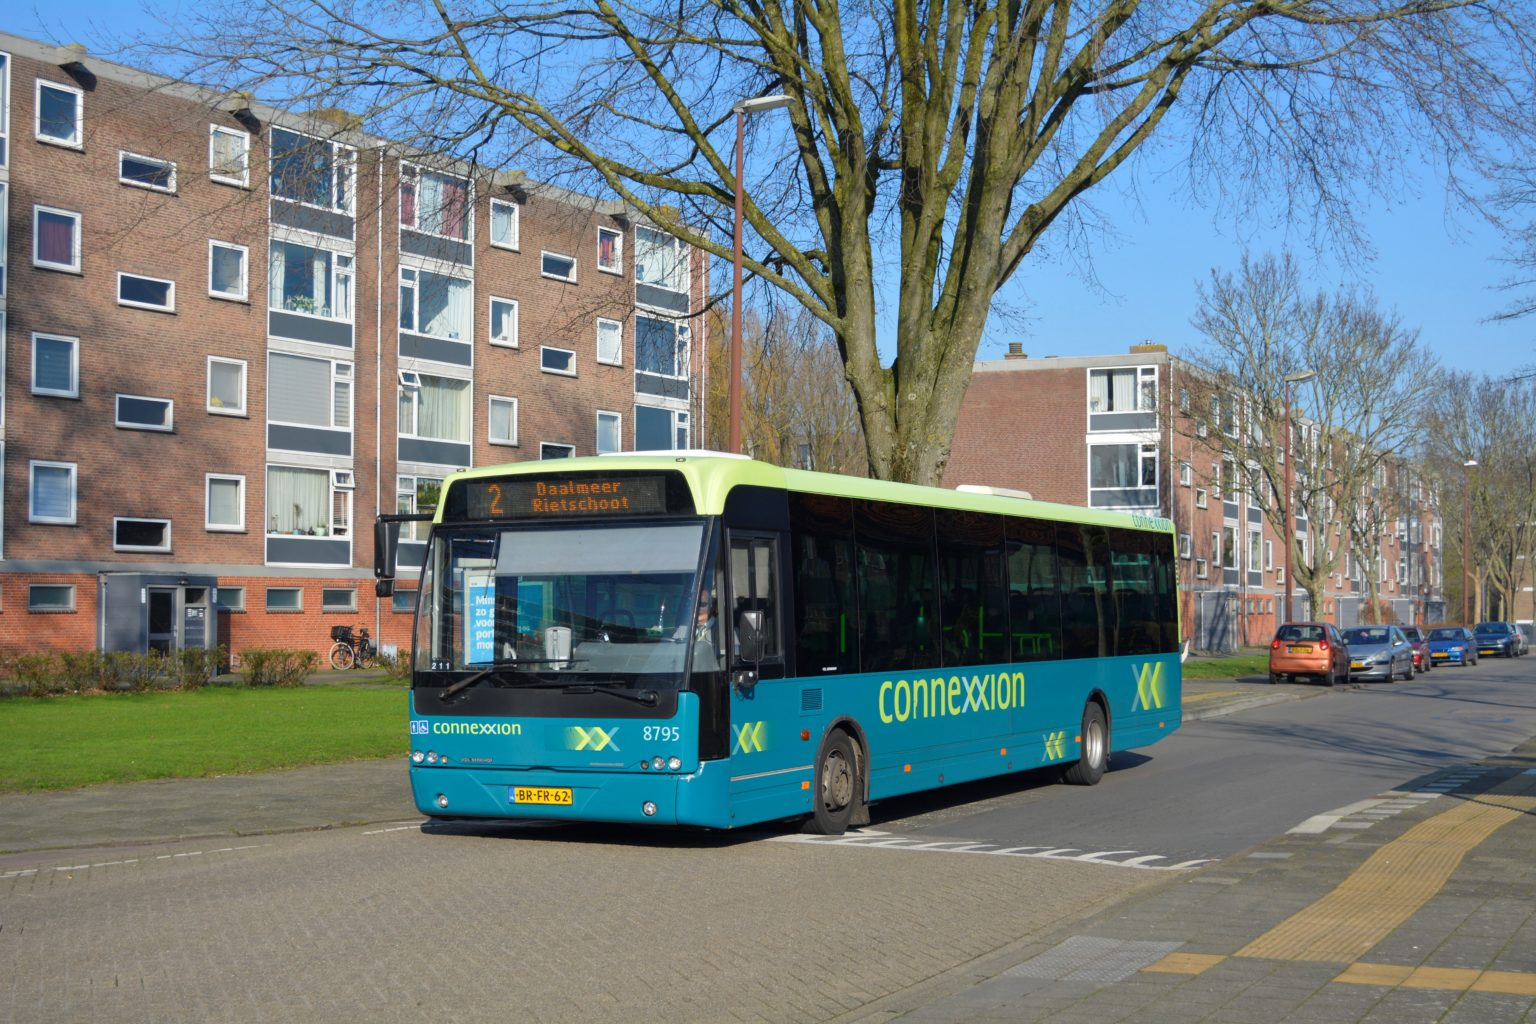 8795-Connexxion